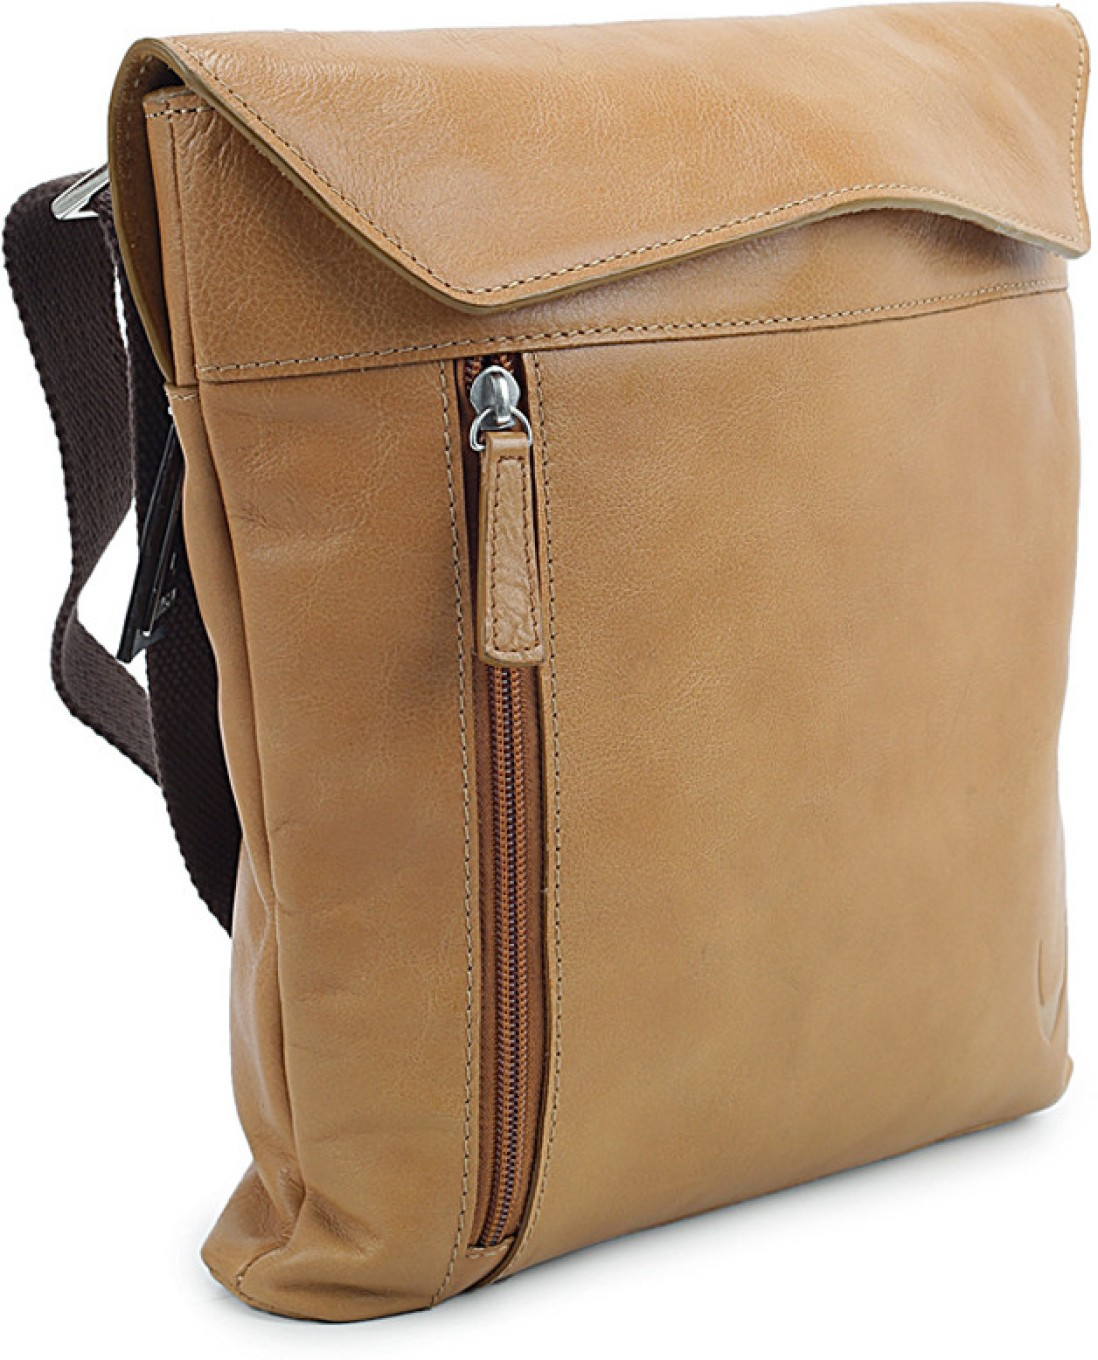 Gym Bag Flipkart: Hidesign Women Casual Tan Genuine Leather Sling Bag Honey